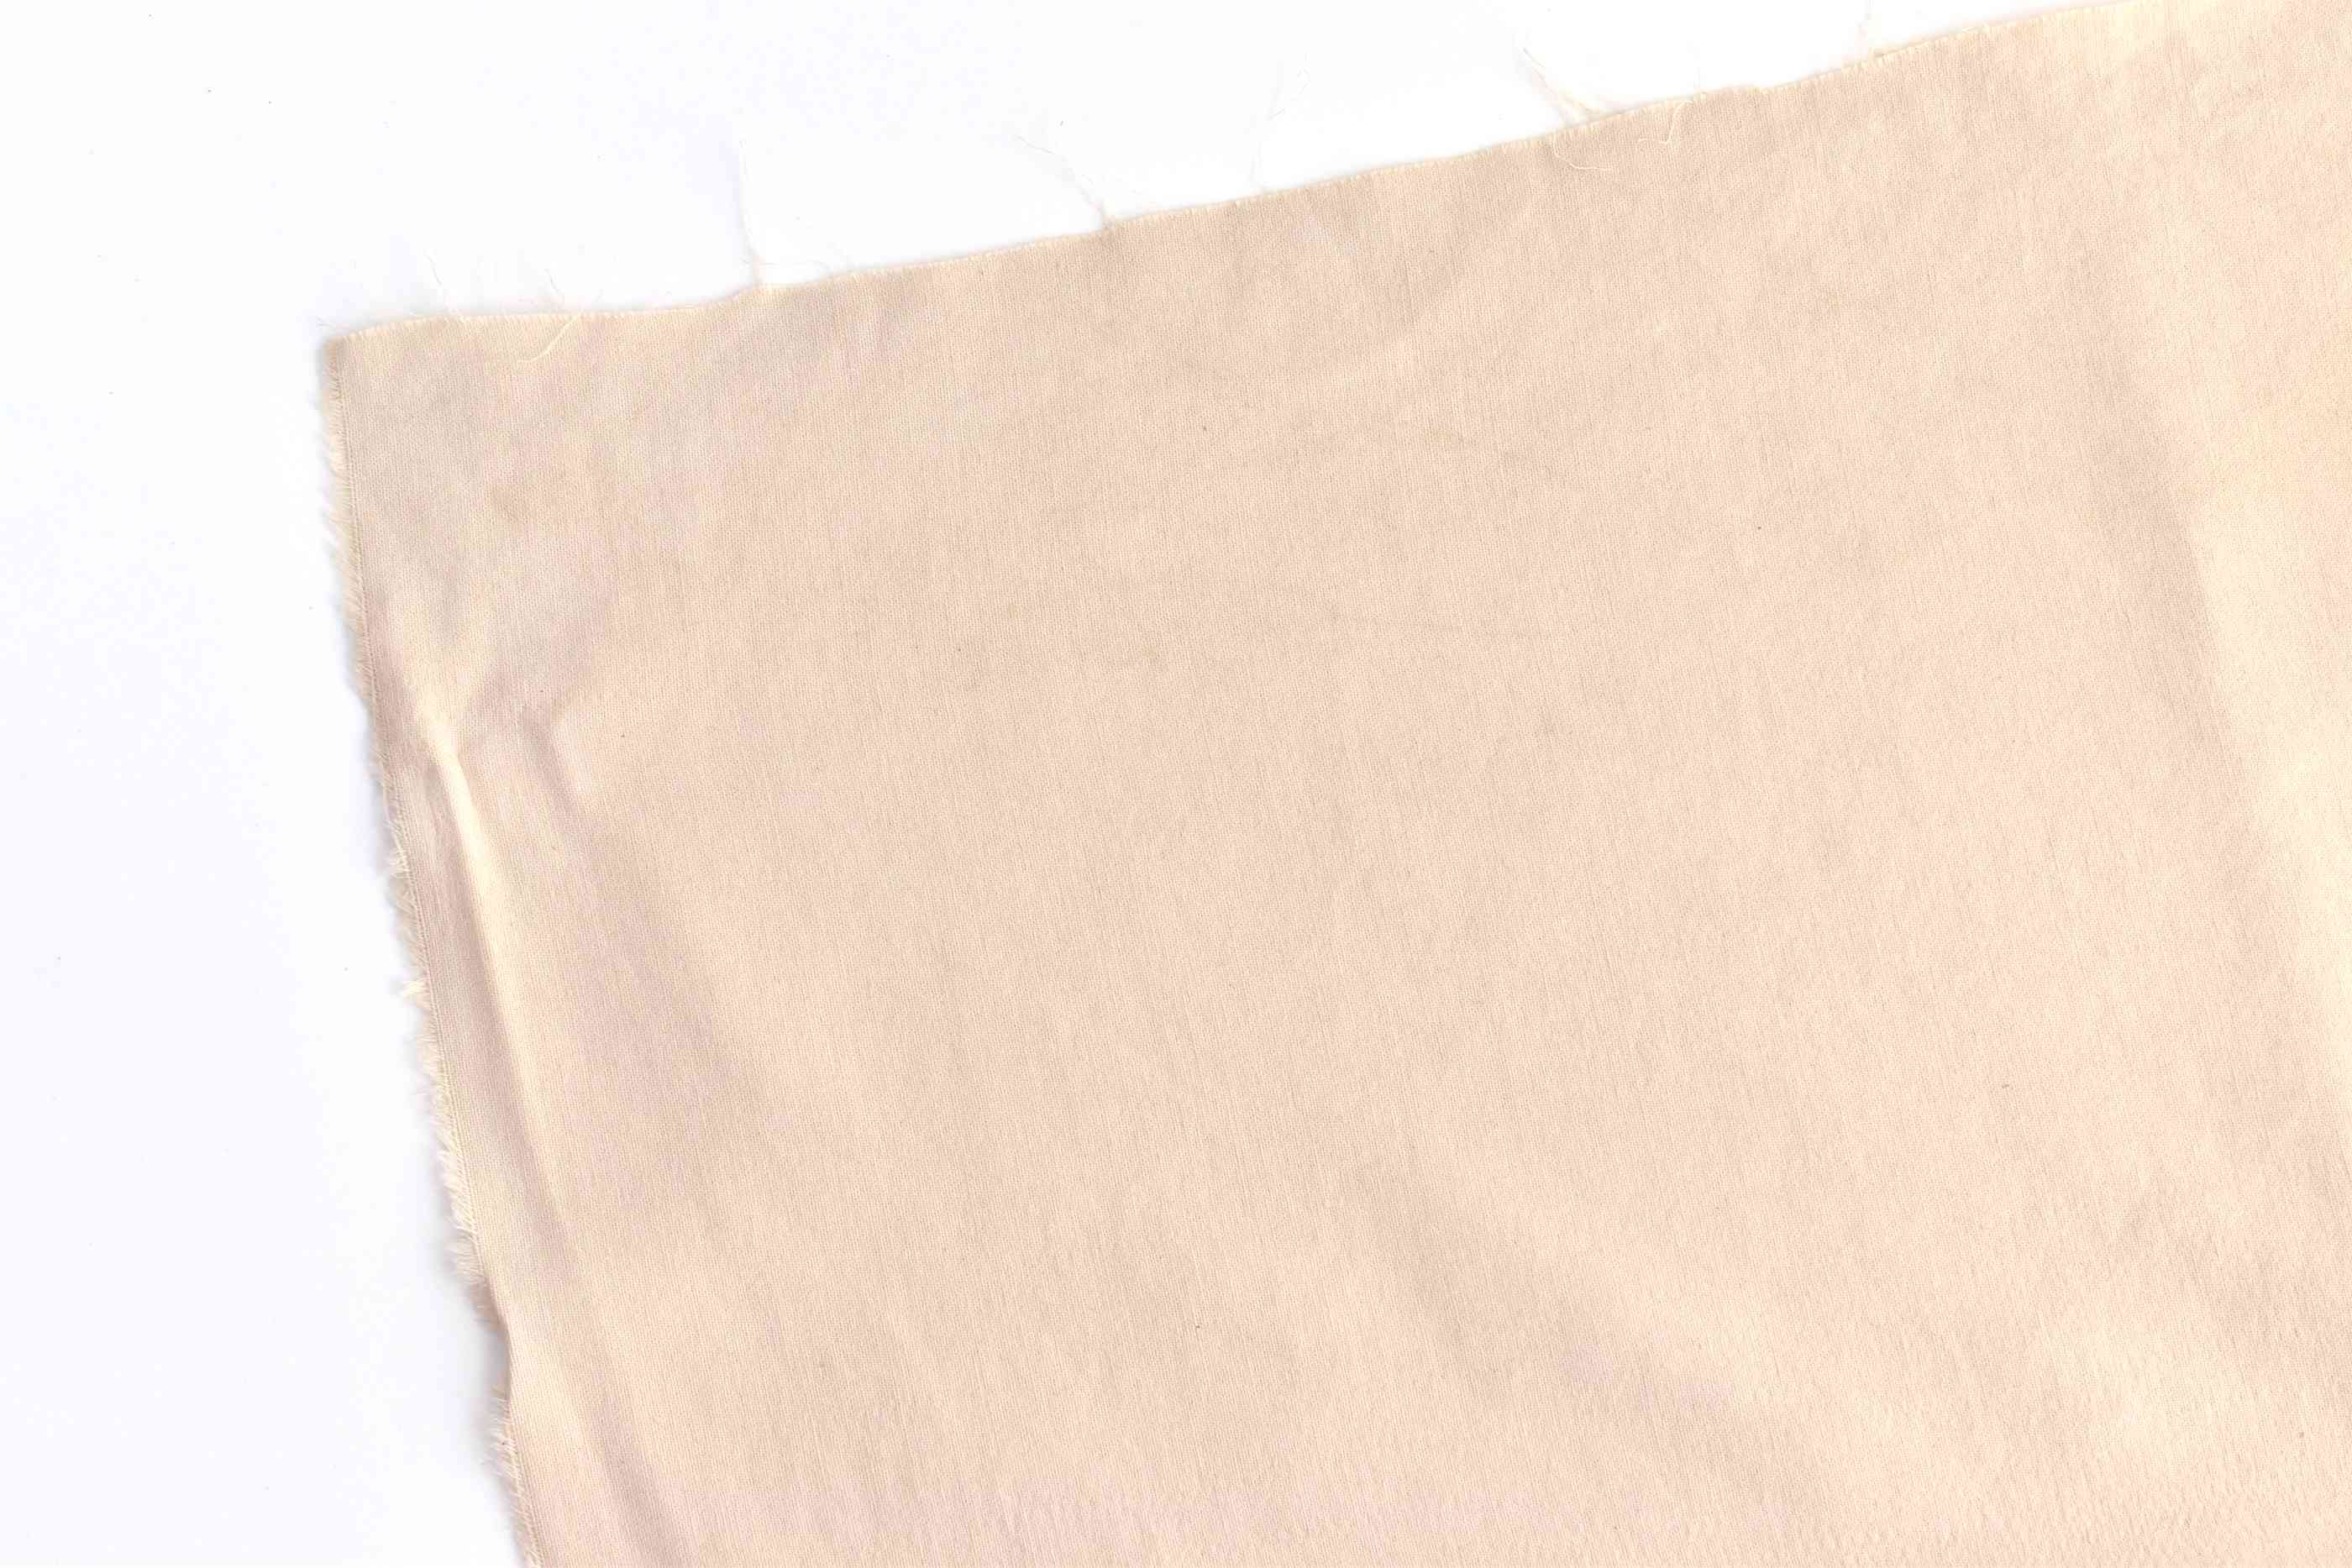 Fabric Dyed With Coffee